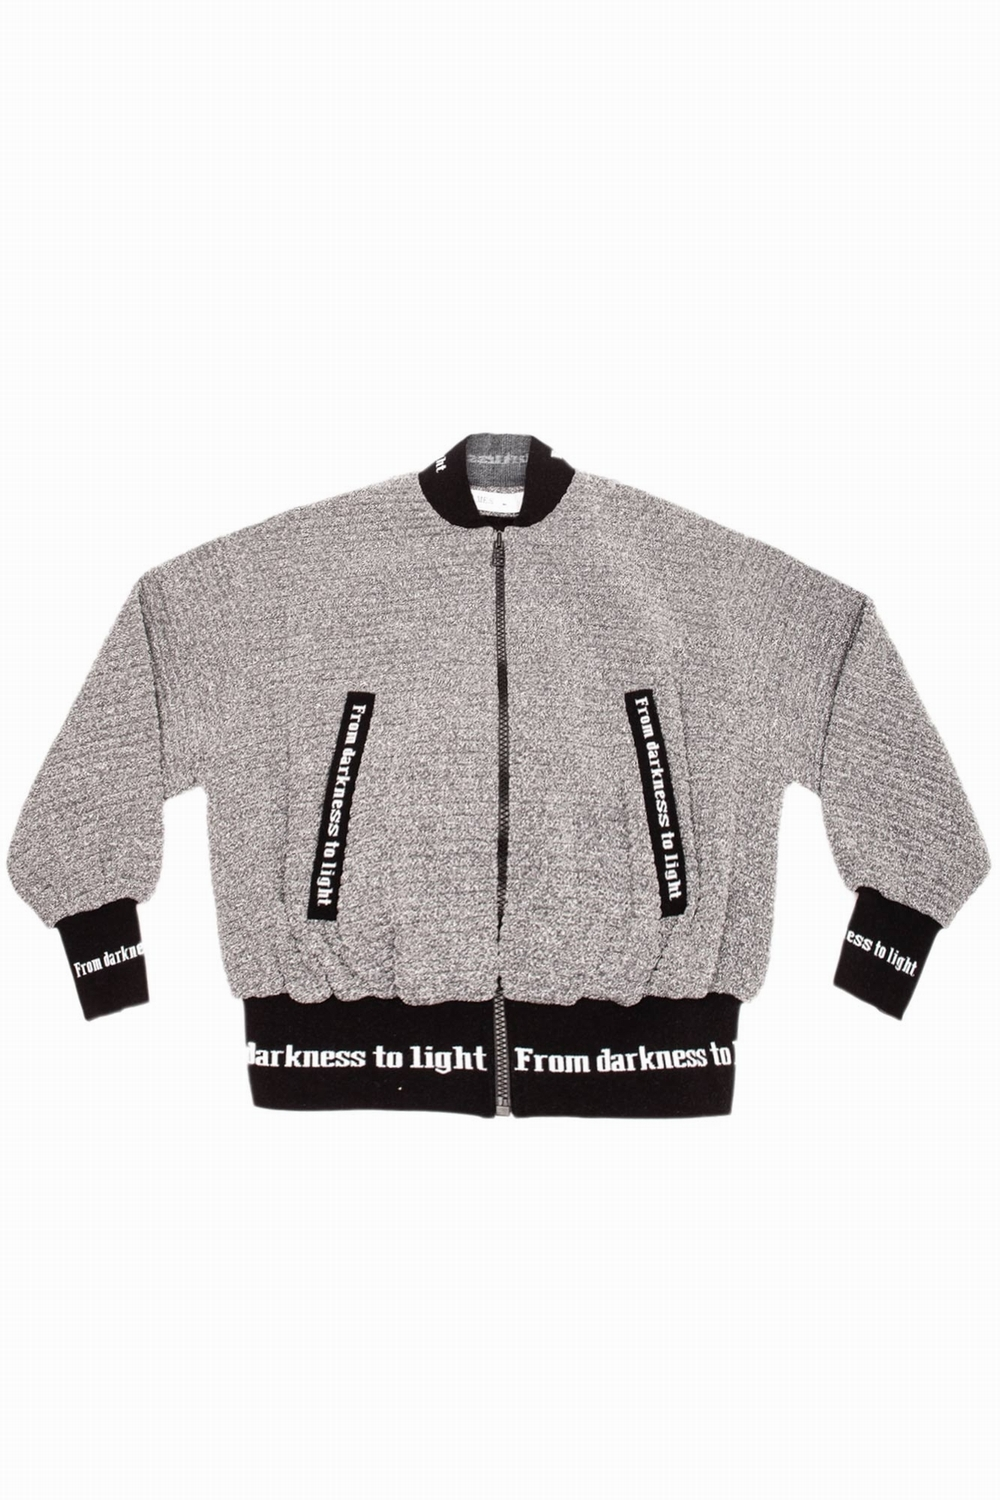 FROM DARKNESS TO LIGHT JACKET